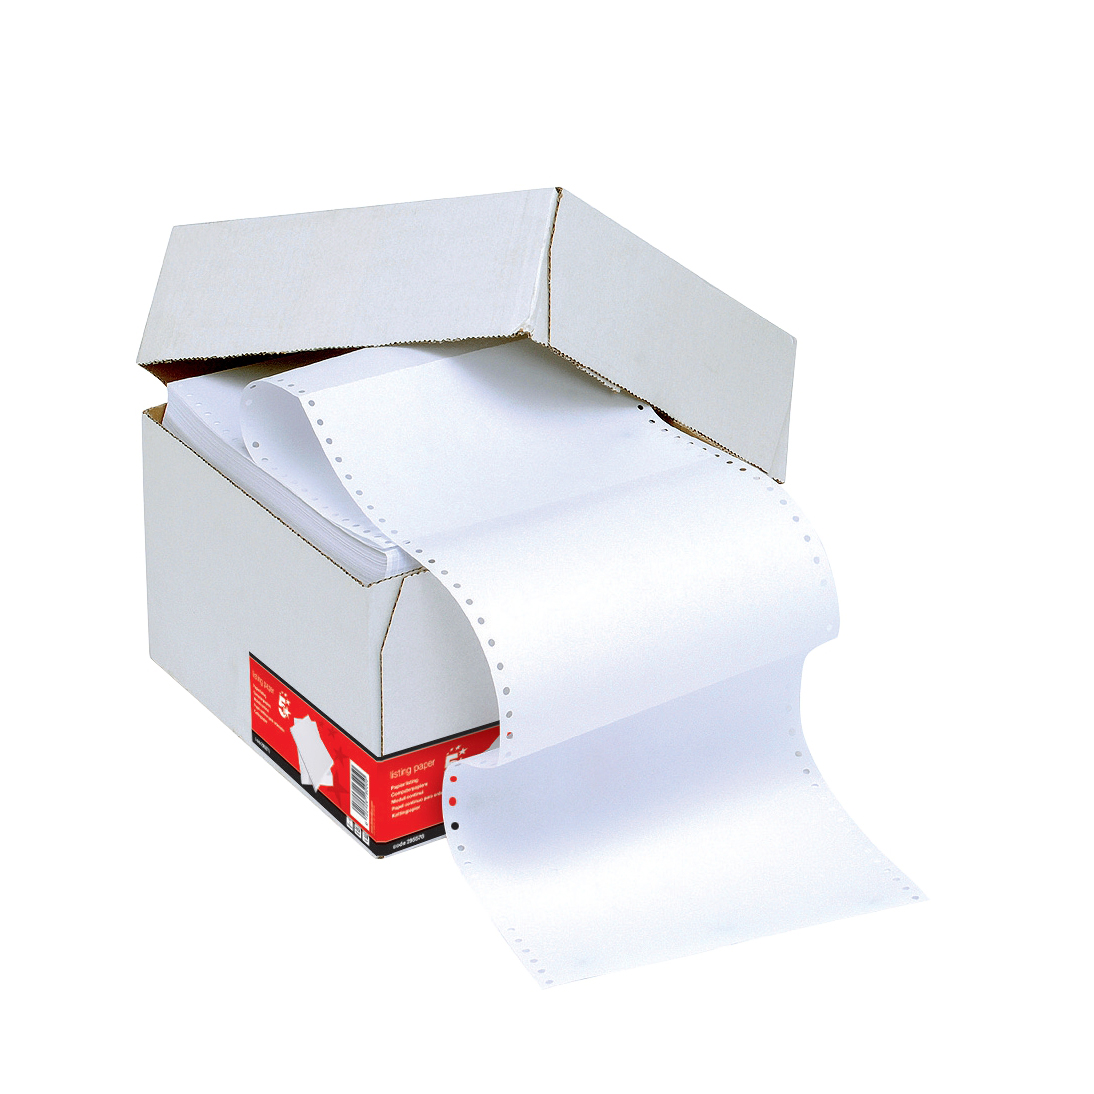 Listing Paper 5 Star Office Listing Paper 1-Part Micro-perforated 60gsm 11inchx241mm Plain 2000 Sheets